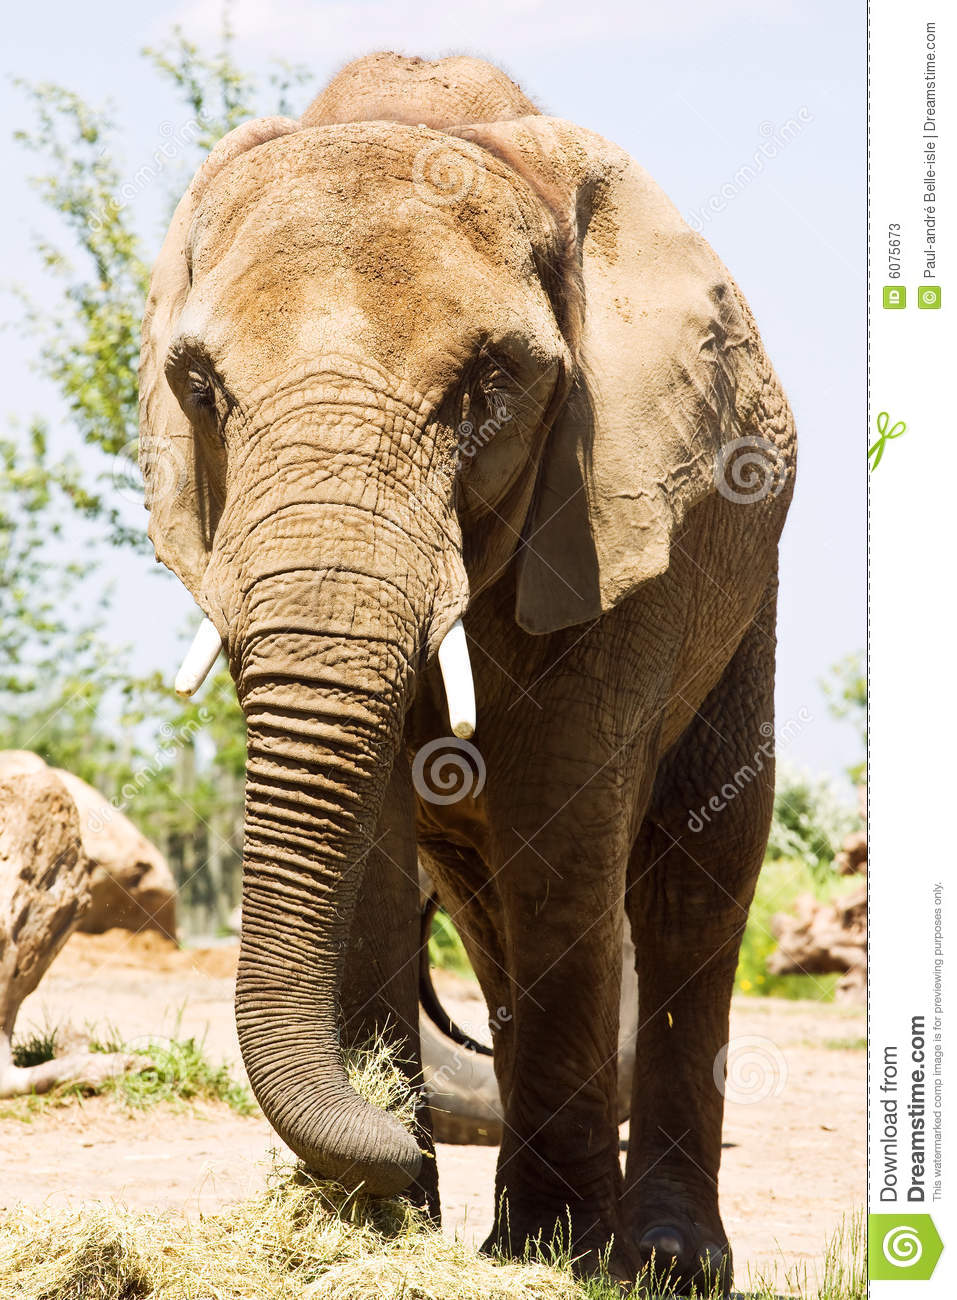 Grote Olifant